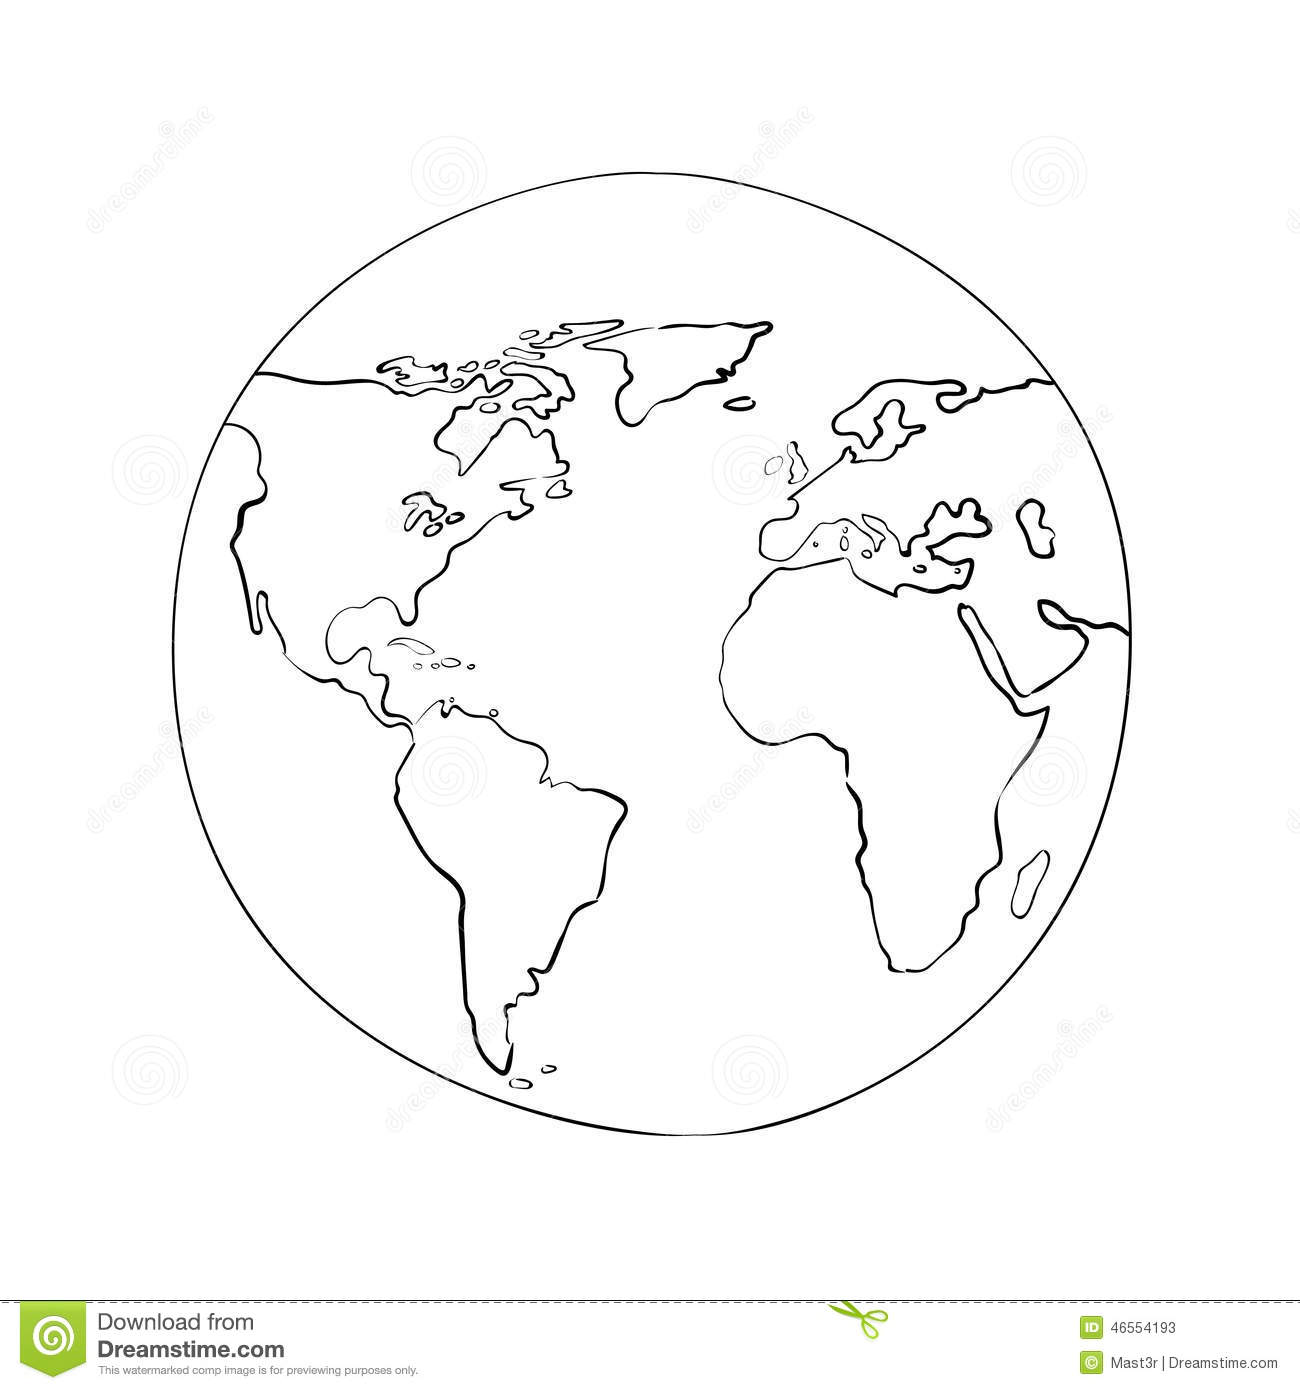 Sketch Globe World Map Black Vector Illustration Stock Vector ...